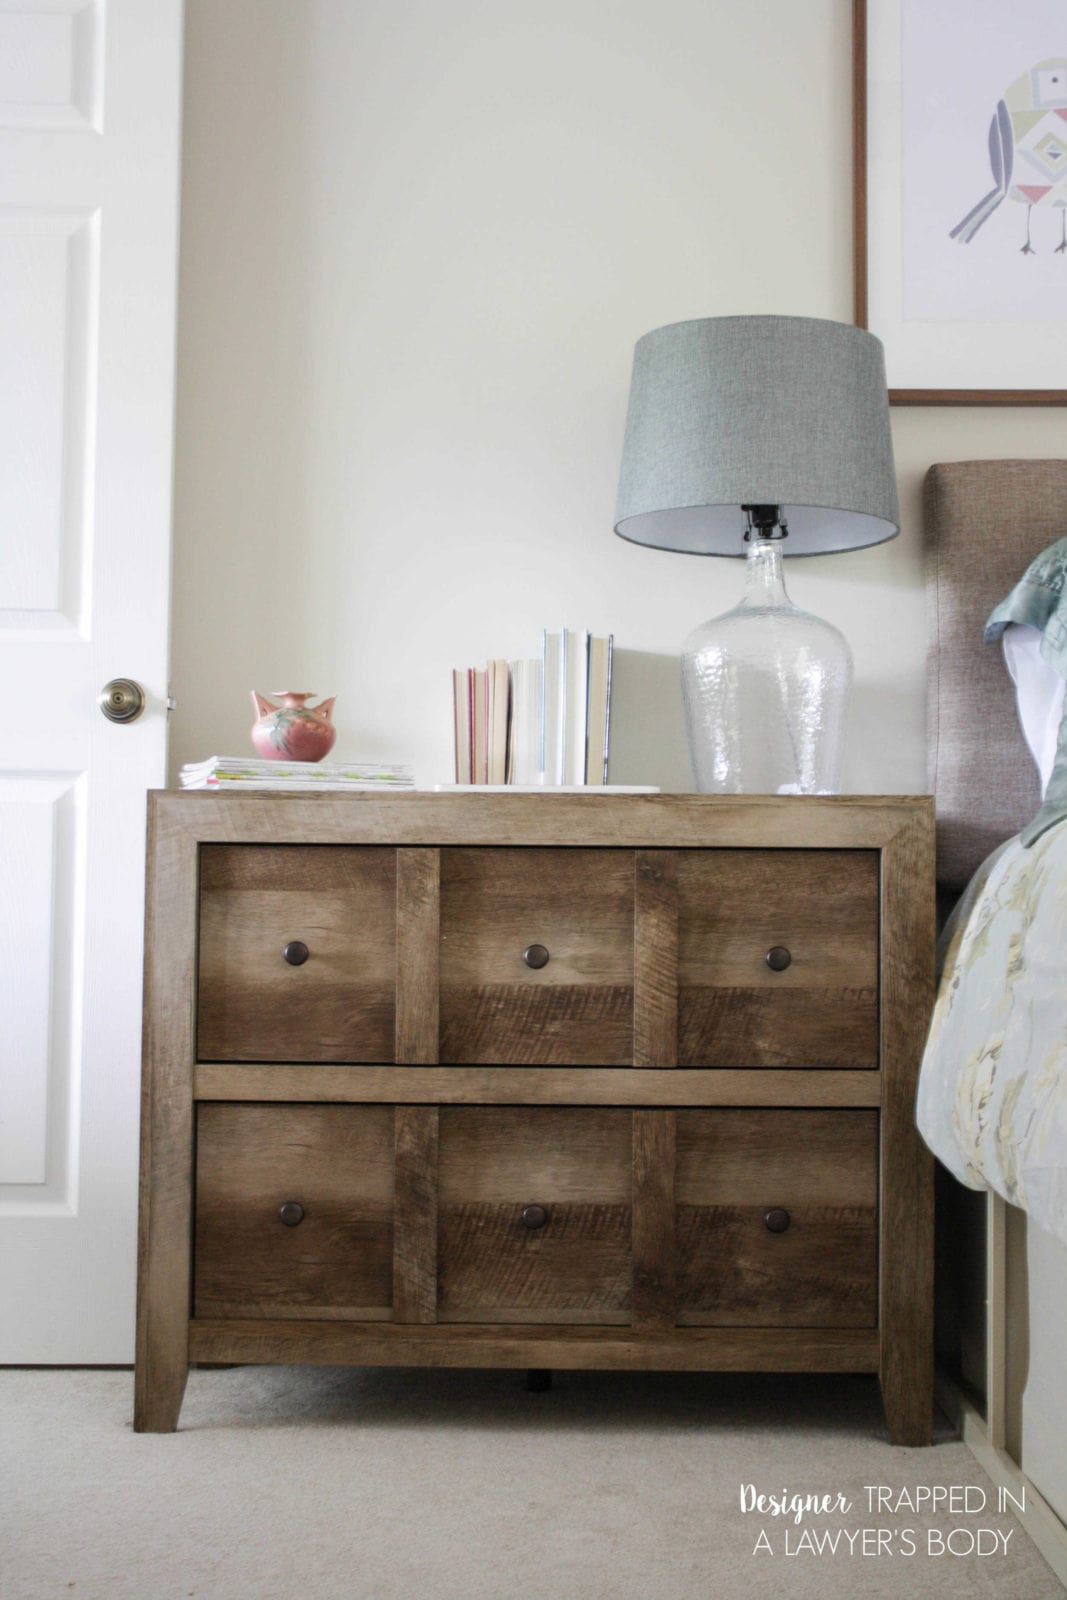 Guest Room Mini makeover